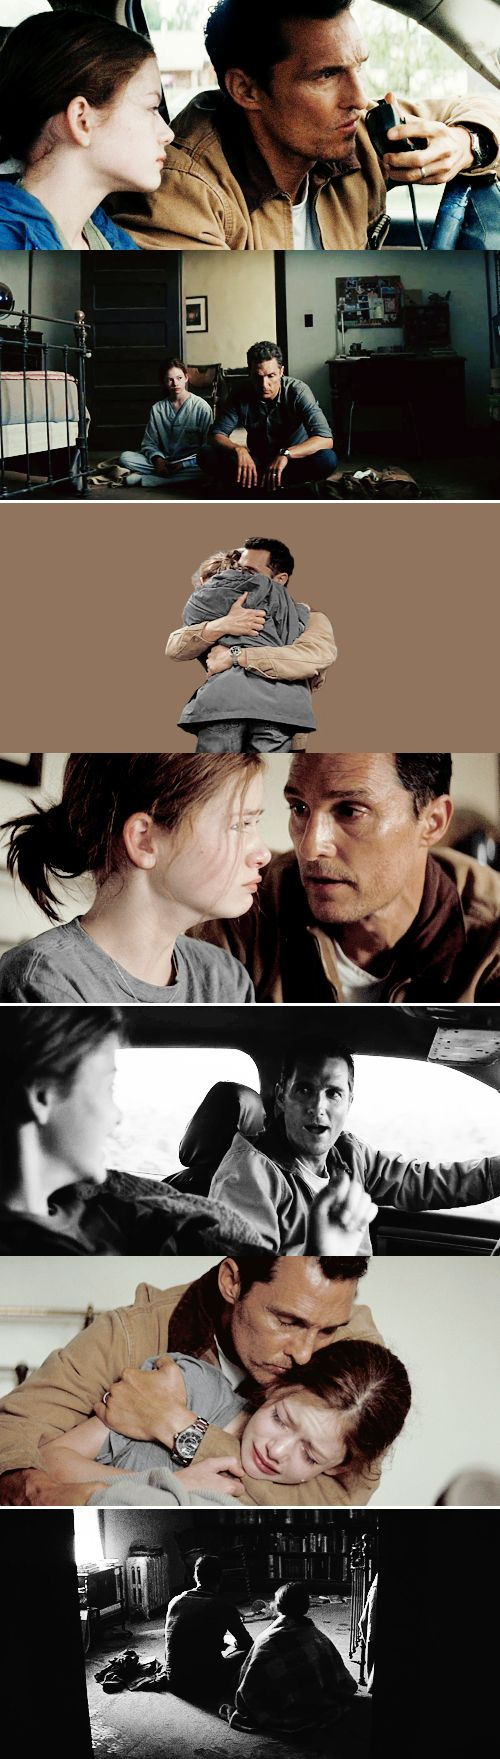 Interstellar 2014 : I loved this movie so much!! The feels...   Once you're a parent, you're the ghost of your children's future. -Cooper, Interstellar